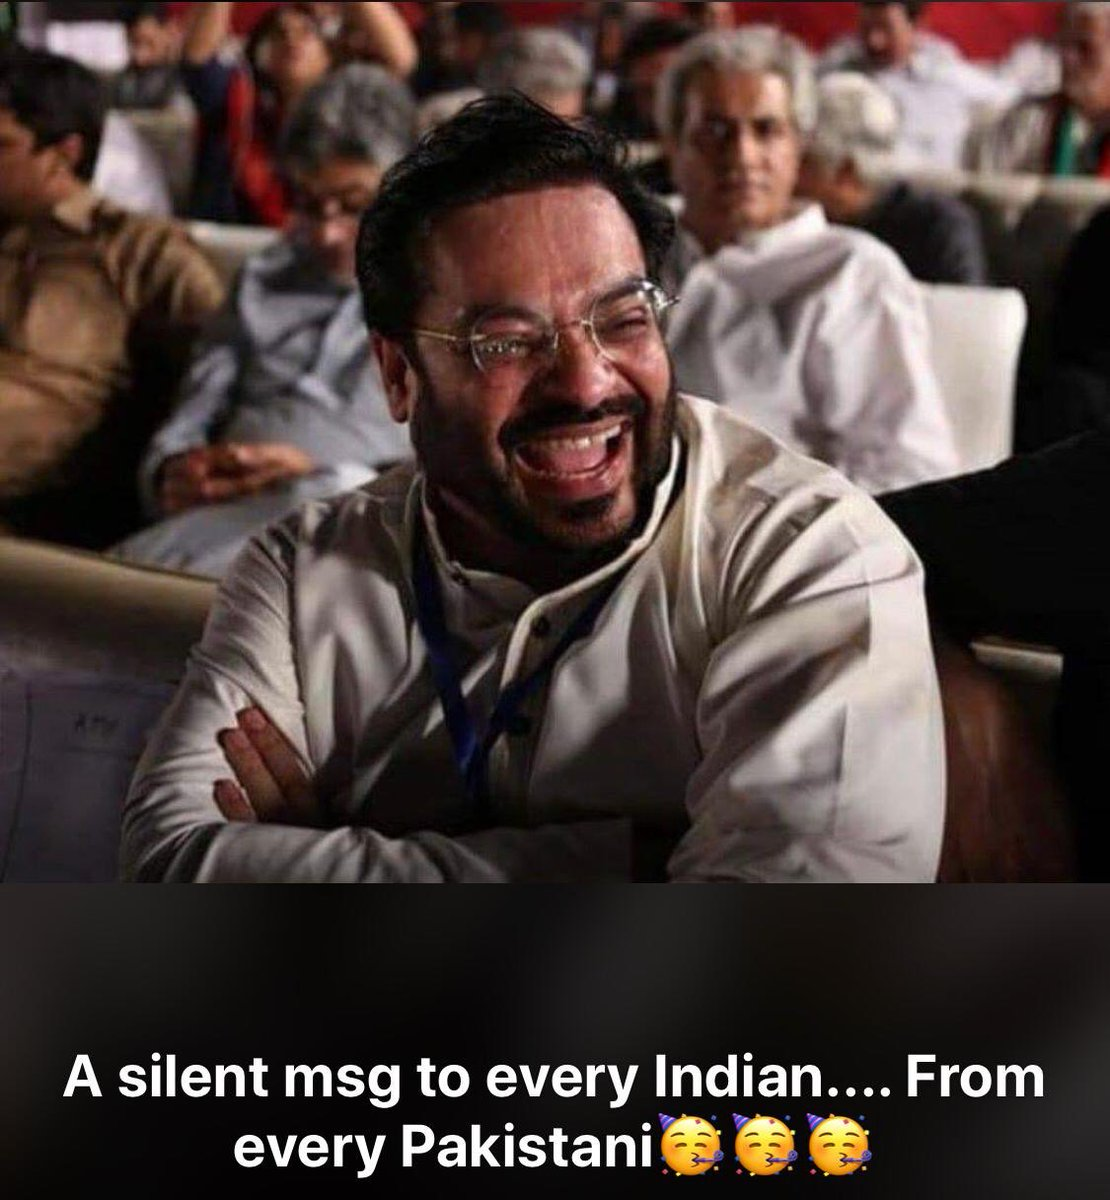 A silent message to every #Indian from every #Pqkistani #ہن_آرام_اے   #CWC19  #sanjaymanjrekar #INDvNZL #NZvIND #WC2019<br>http://pic.twitter.com/sHGj65PvQJ